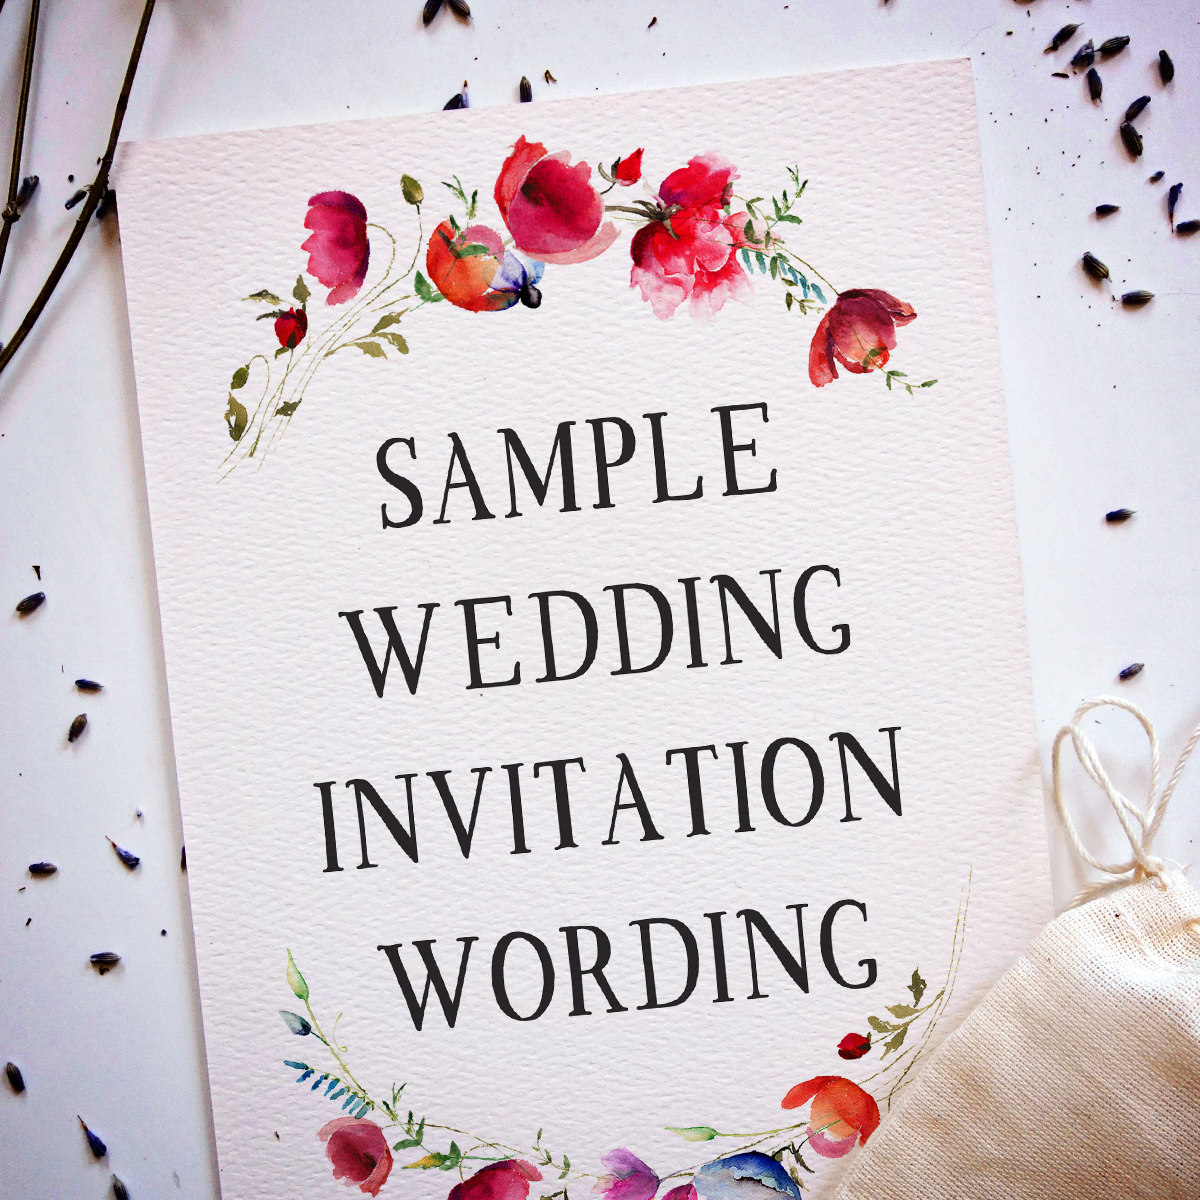 Ideas Wedding Invitations Writing 15 wedding invitation wording samples from traditional to fun